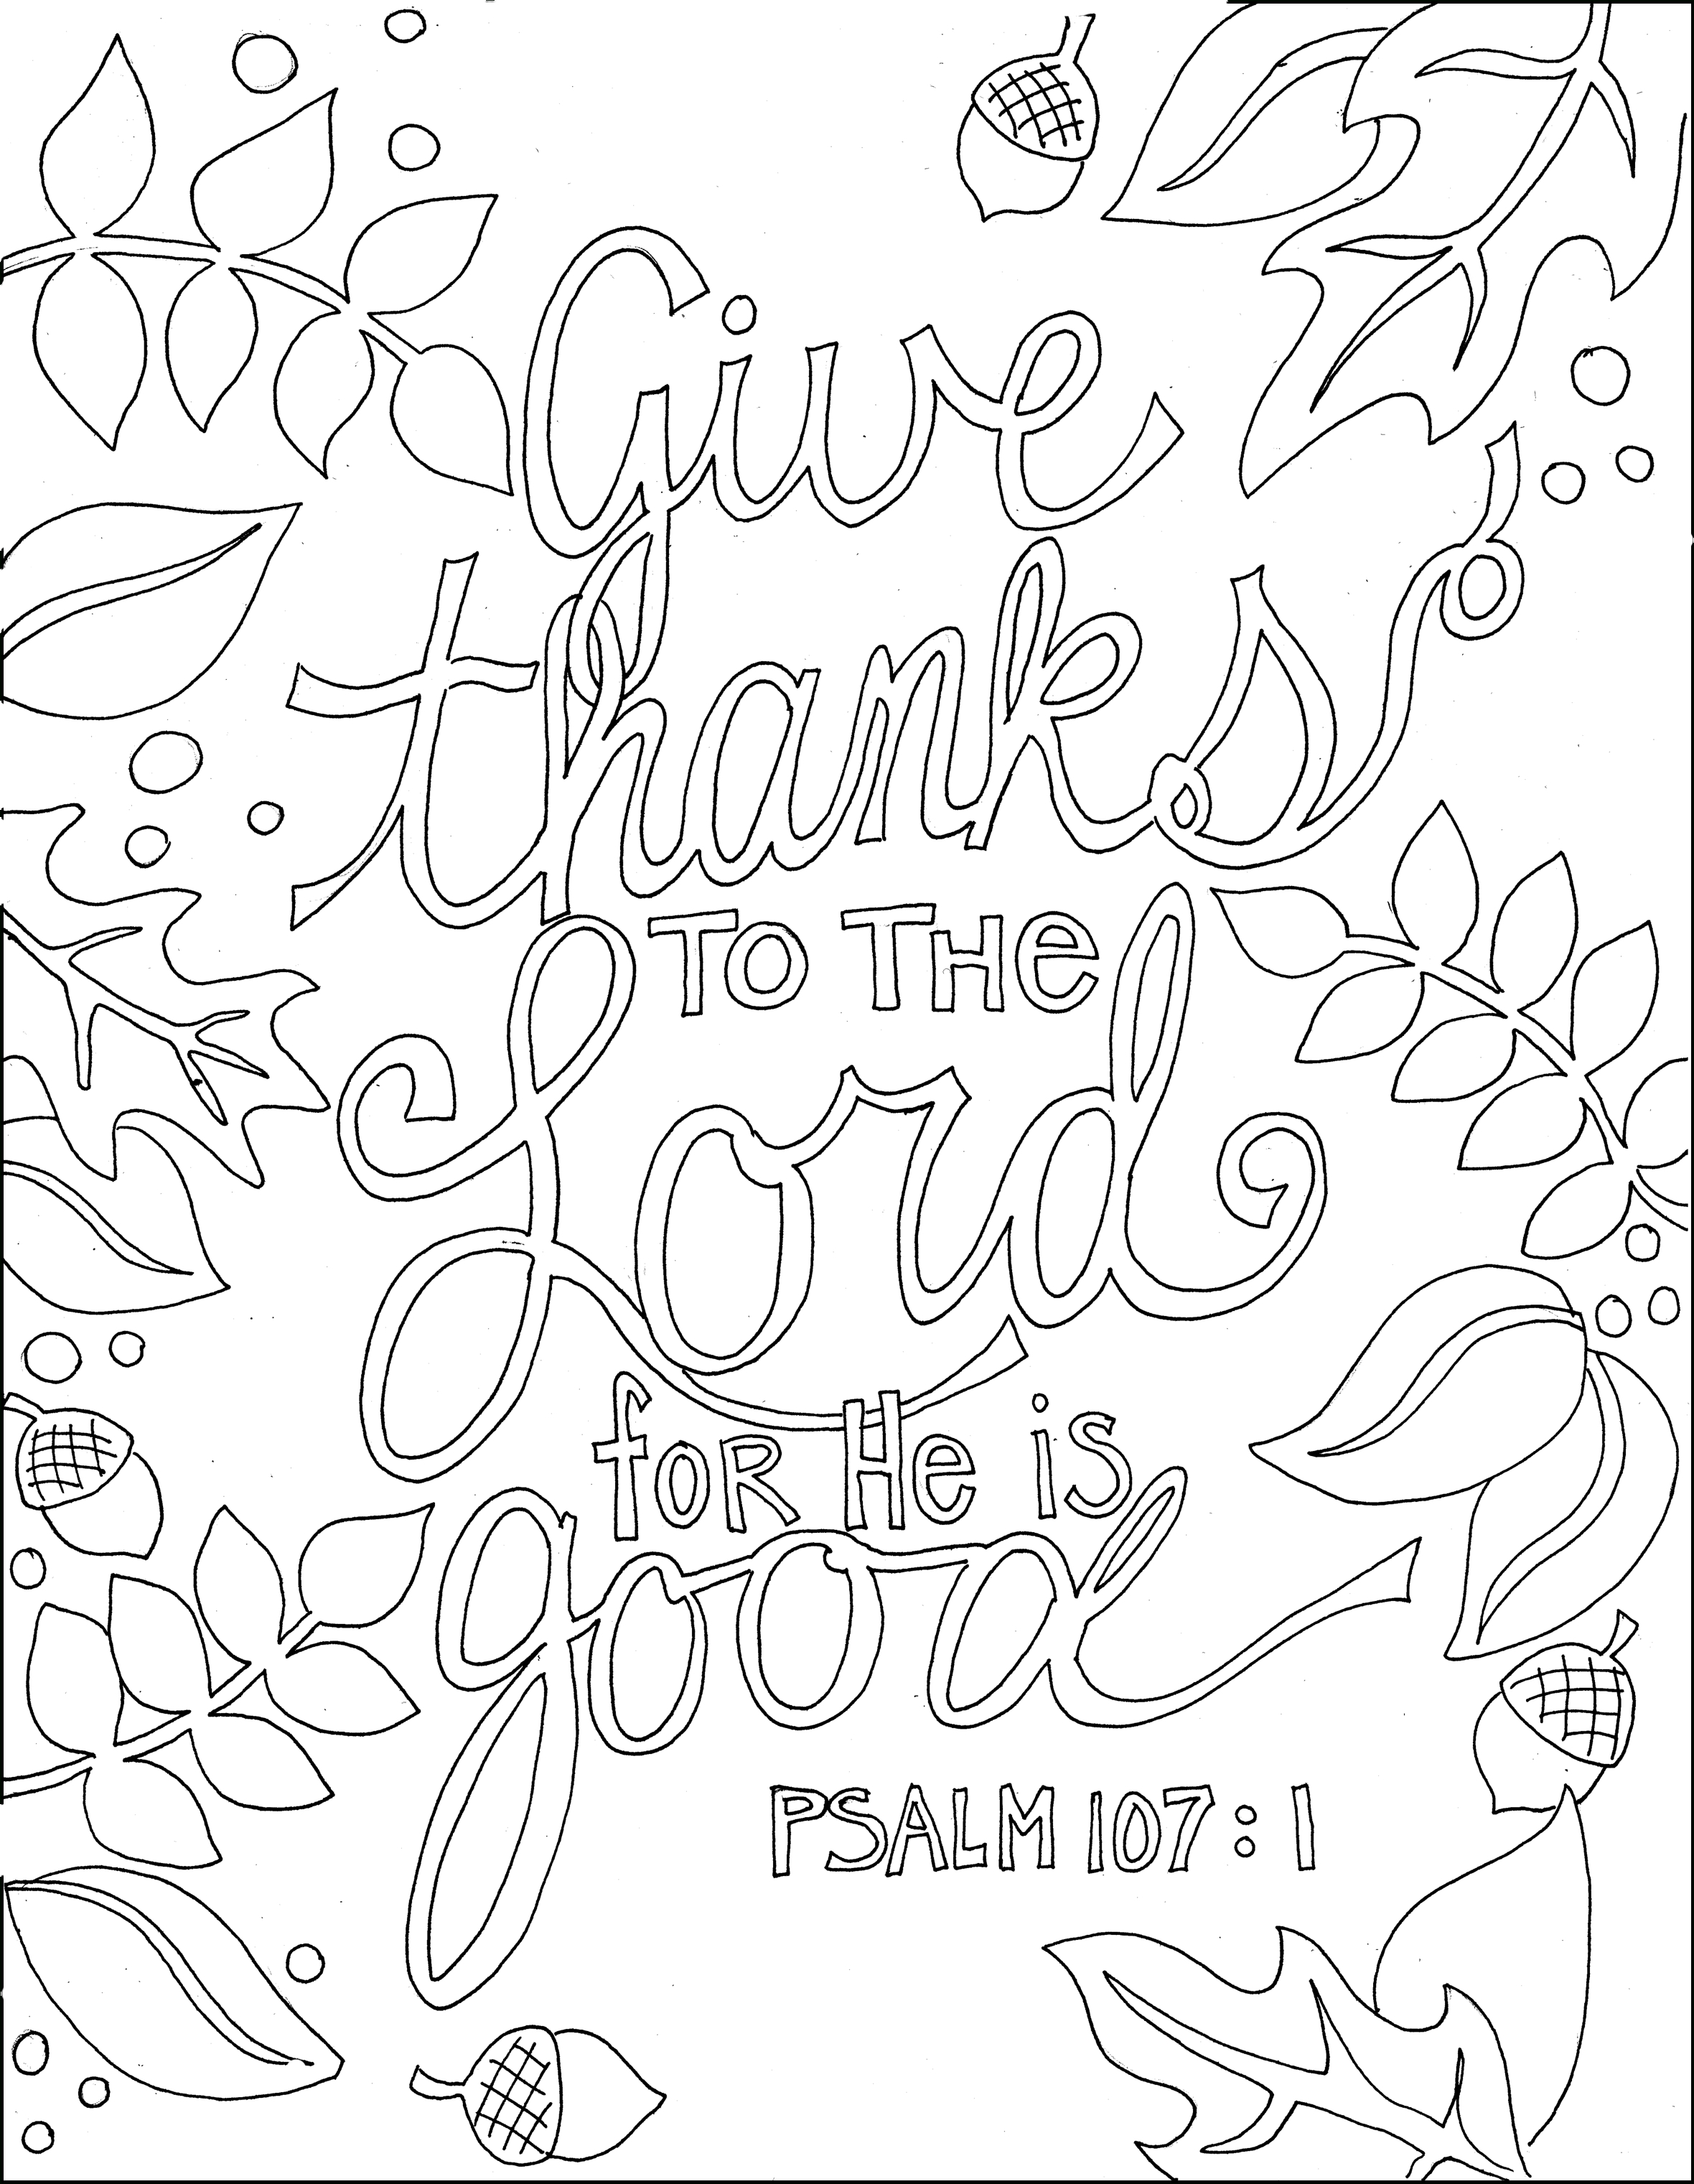 Ps 107.1 | Crafts, Arts | Printable Bible Verses, Bible Verse - Free Printable Bible Coloring Pages With Scriptures